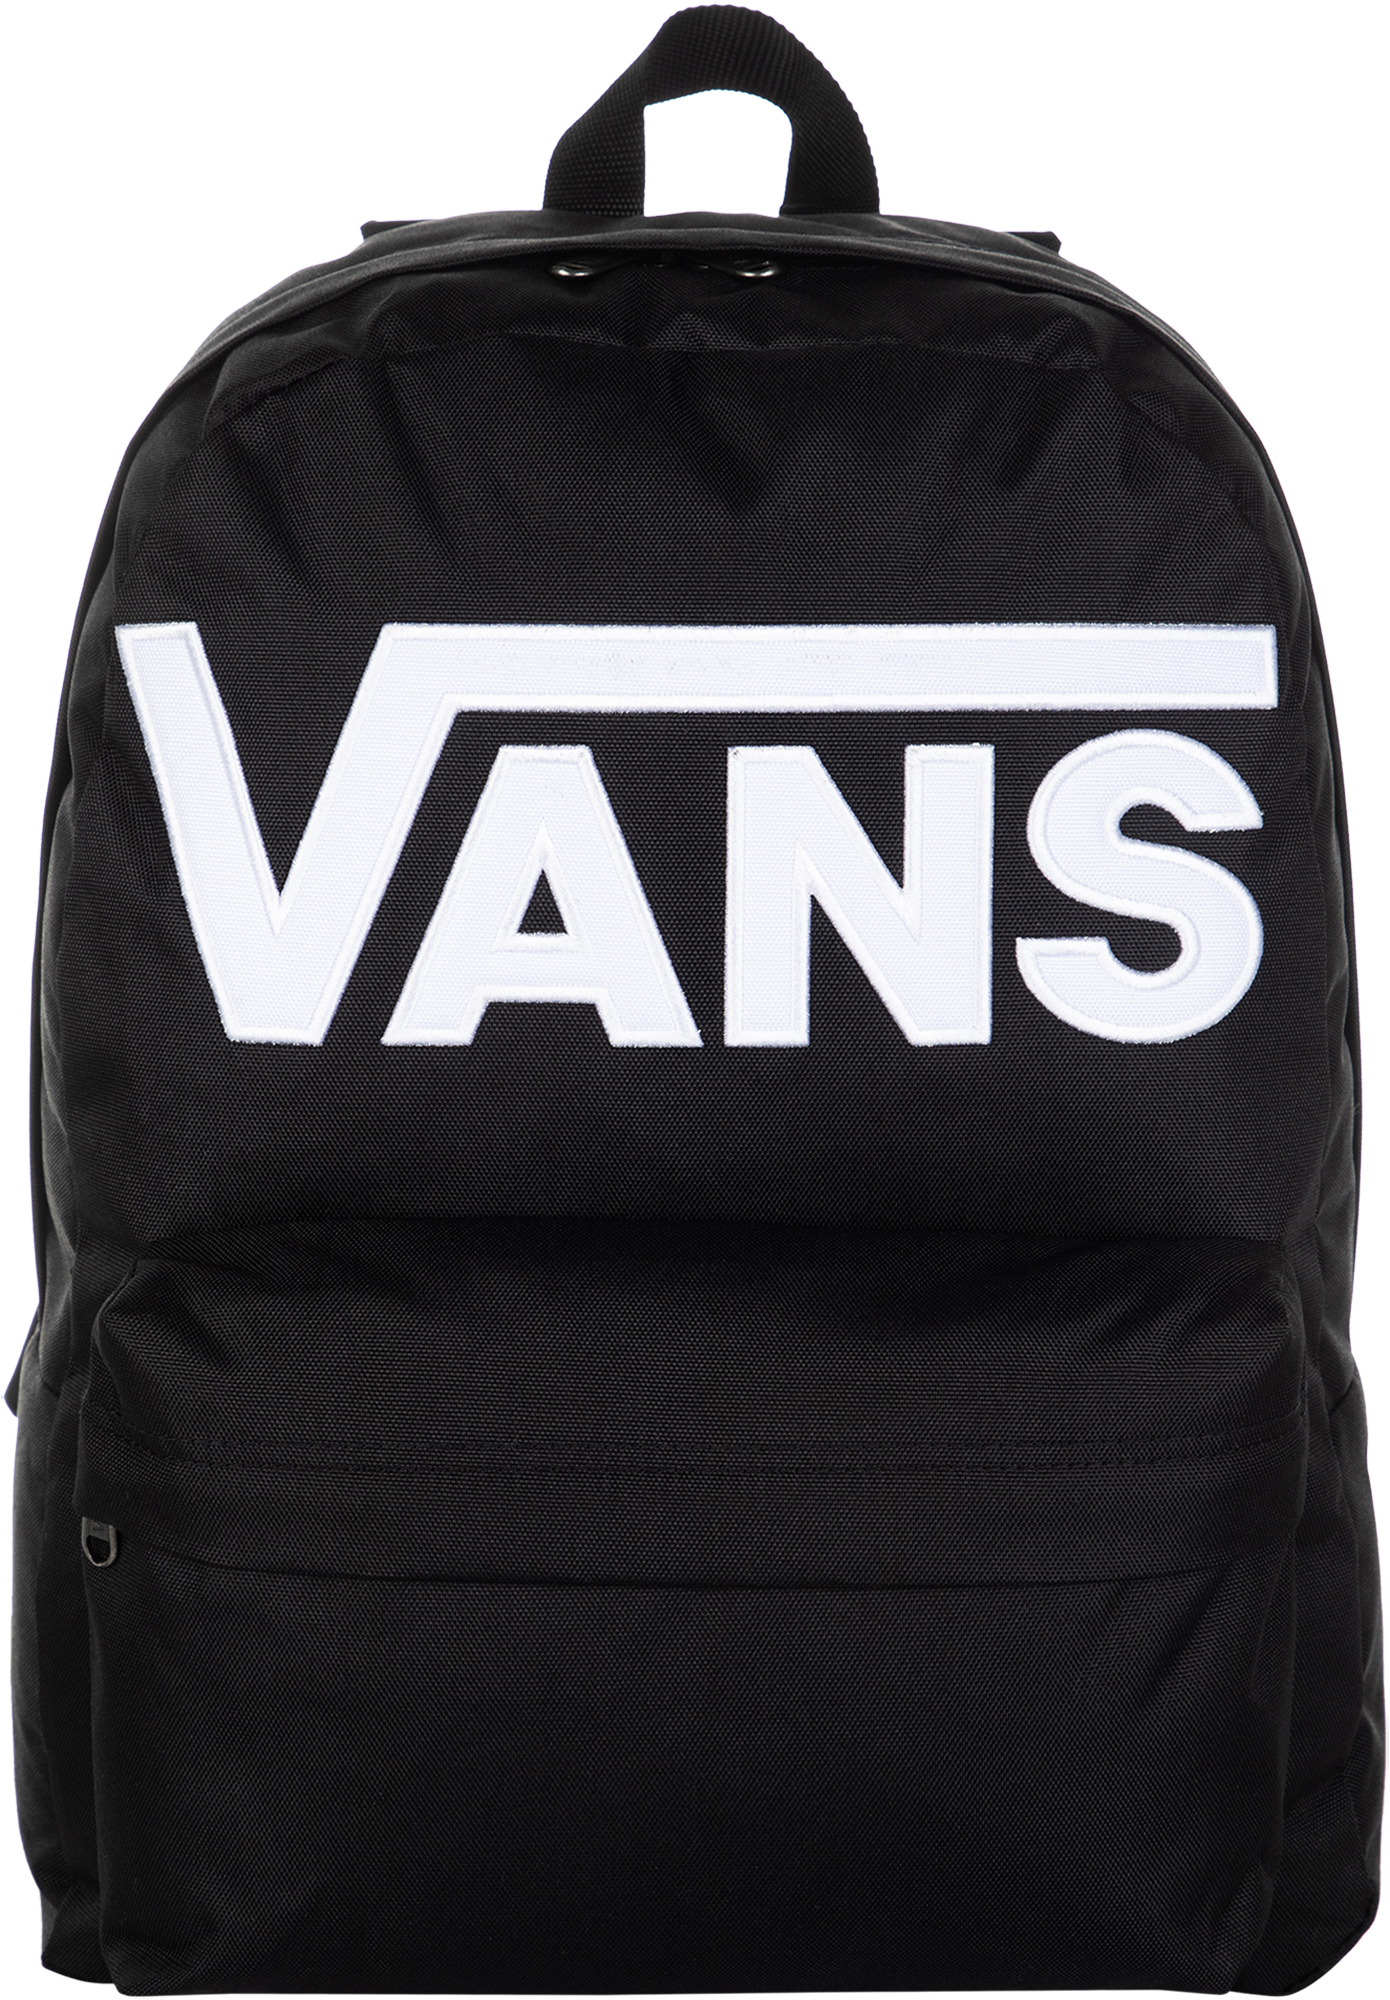 цена Vans Рюкзак Vans Old Skool III Backpack онлайн в 2017 году